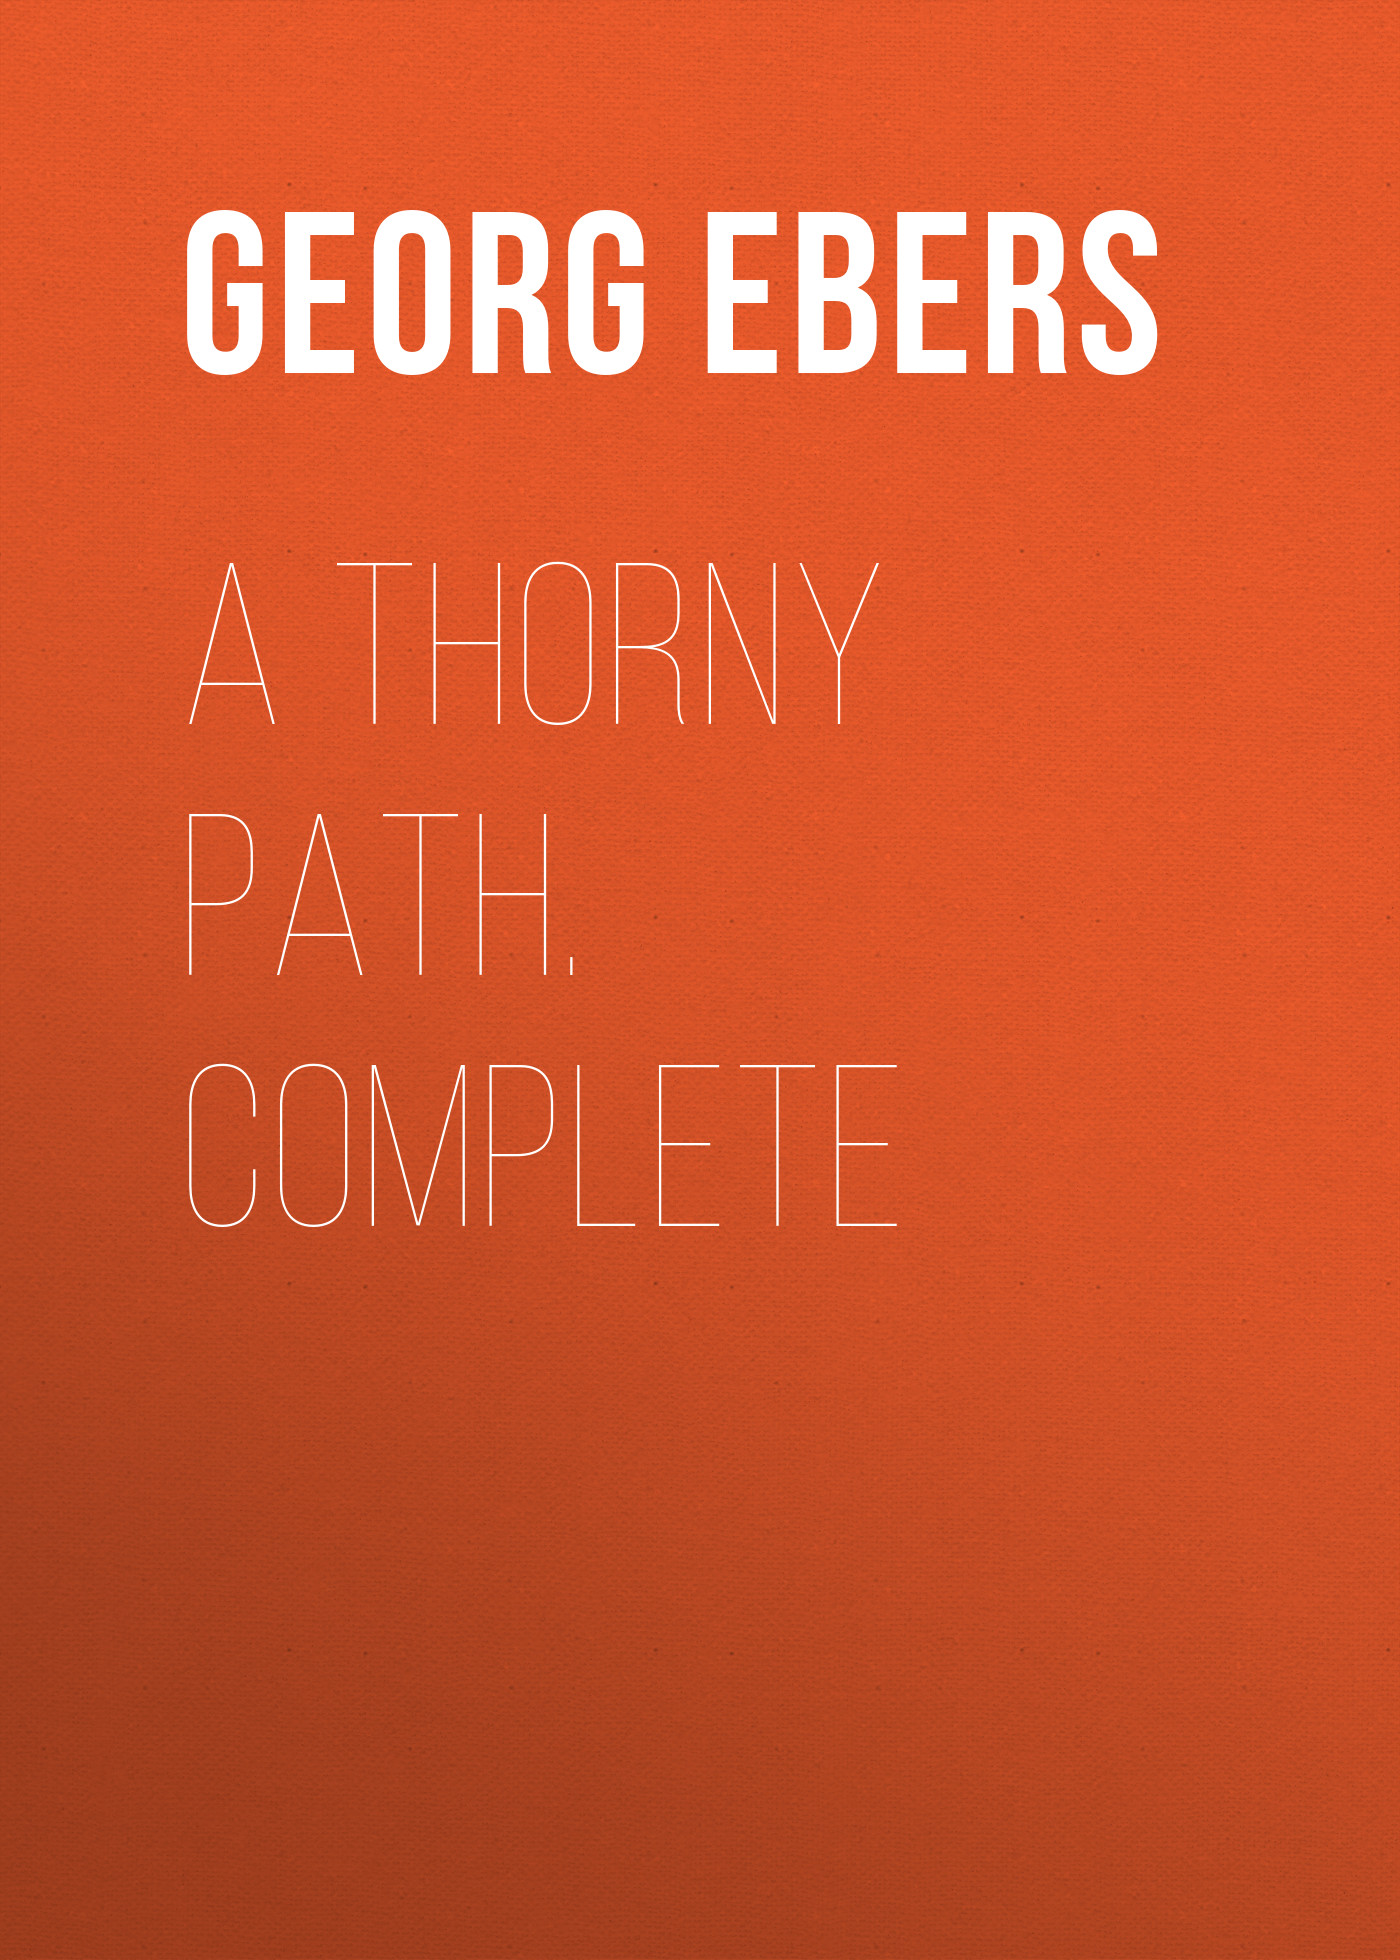 Georg Ebers A Thorny Path. Complete